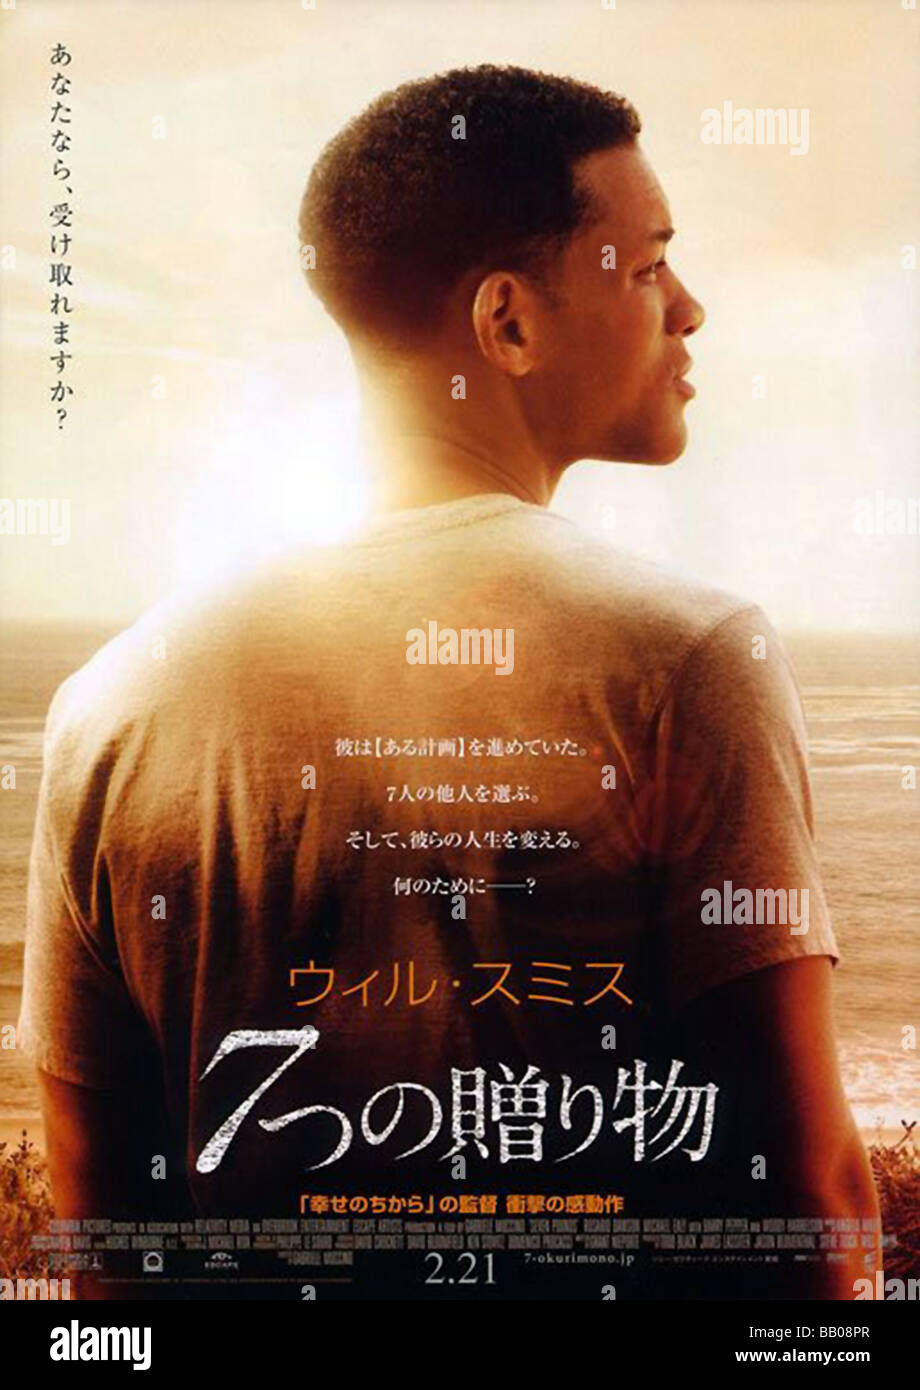 Seven Pounds Year : 2009 Director : Gabriele Muccino Will Smith,  Movie poster (Japan) - Stock Image